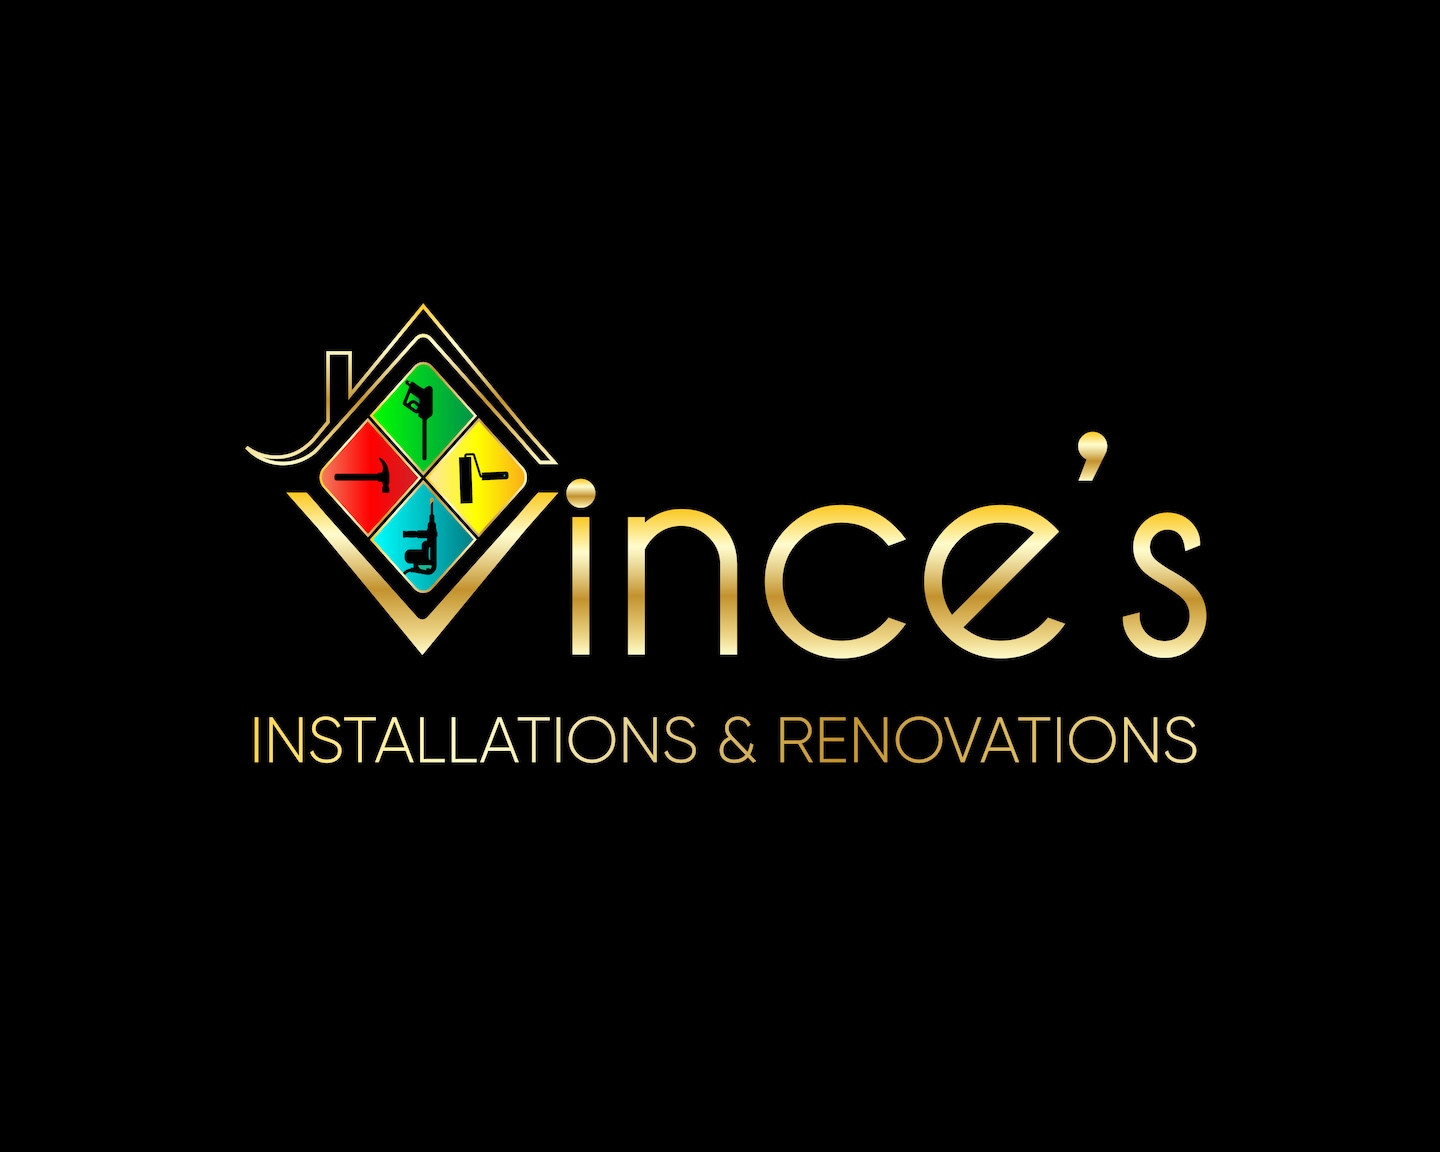 Vince's Installations and Renovations, LLC